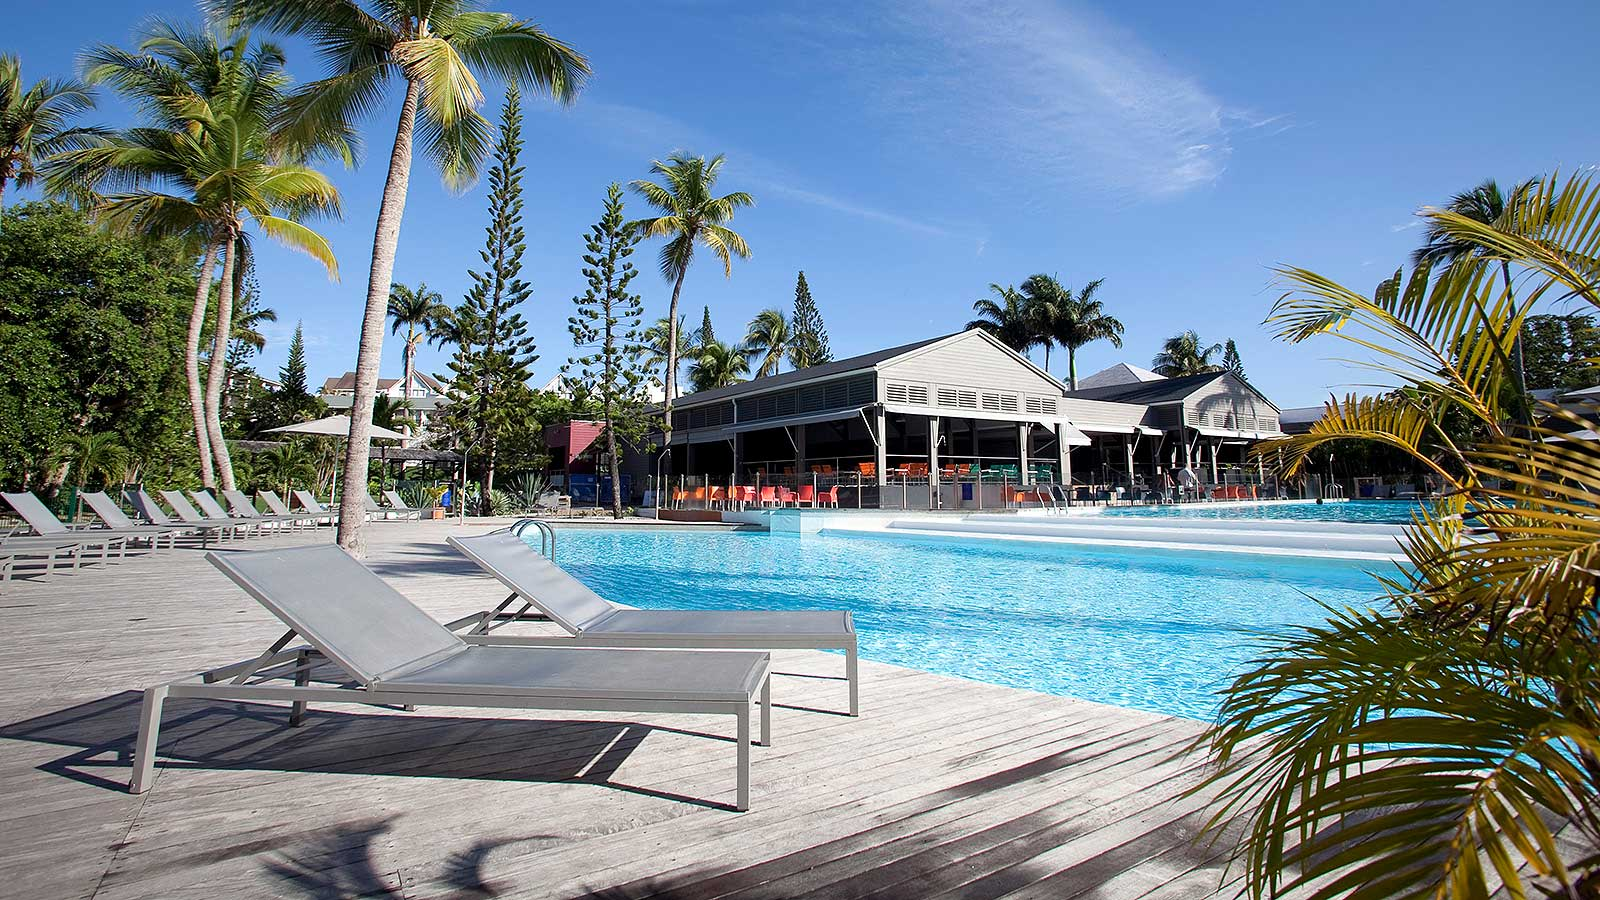 http://www.deshotelsetdesiles.com/hotel-vol-guadeloupe/photos/diapo-creole-piscine.jpg